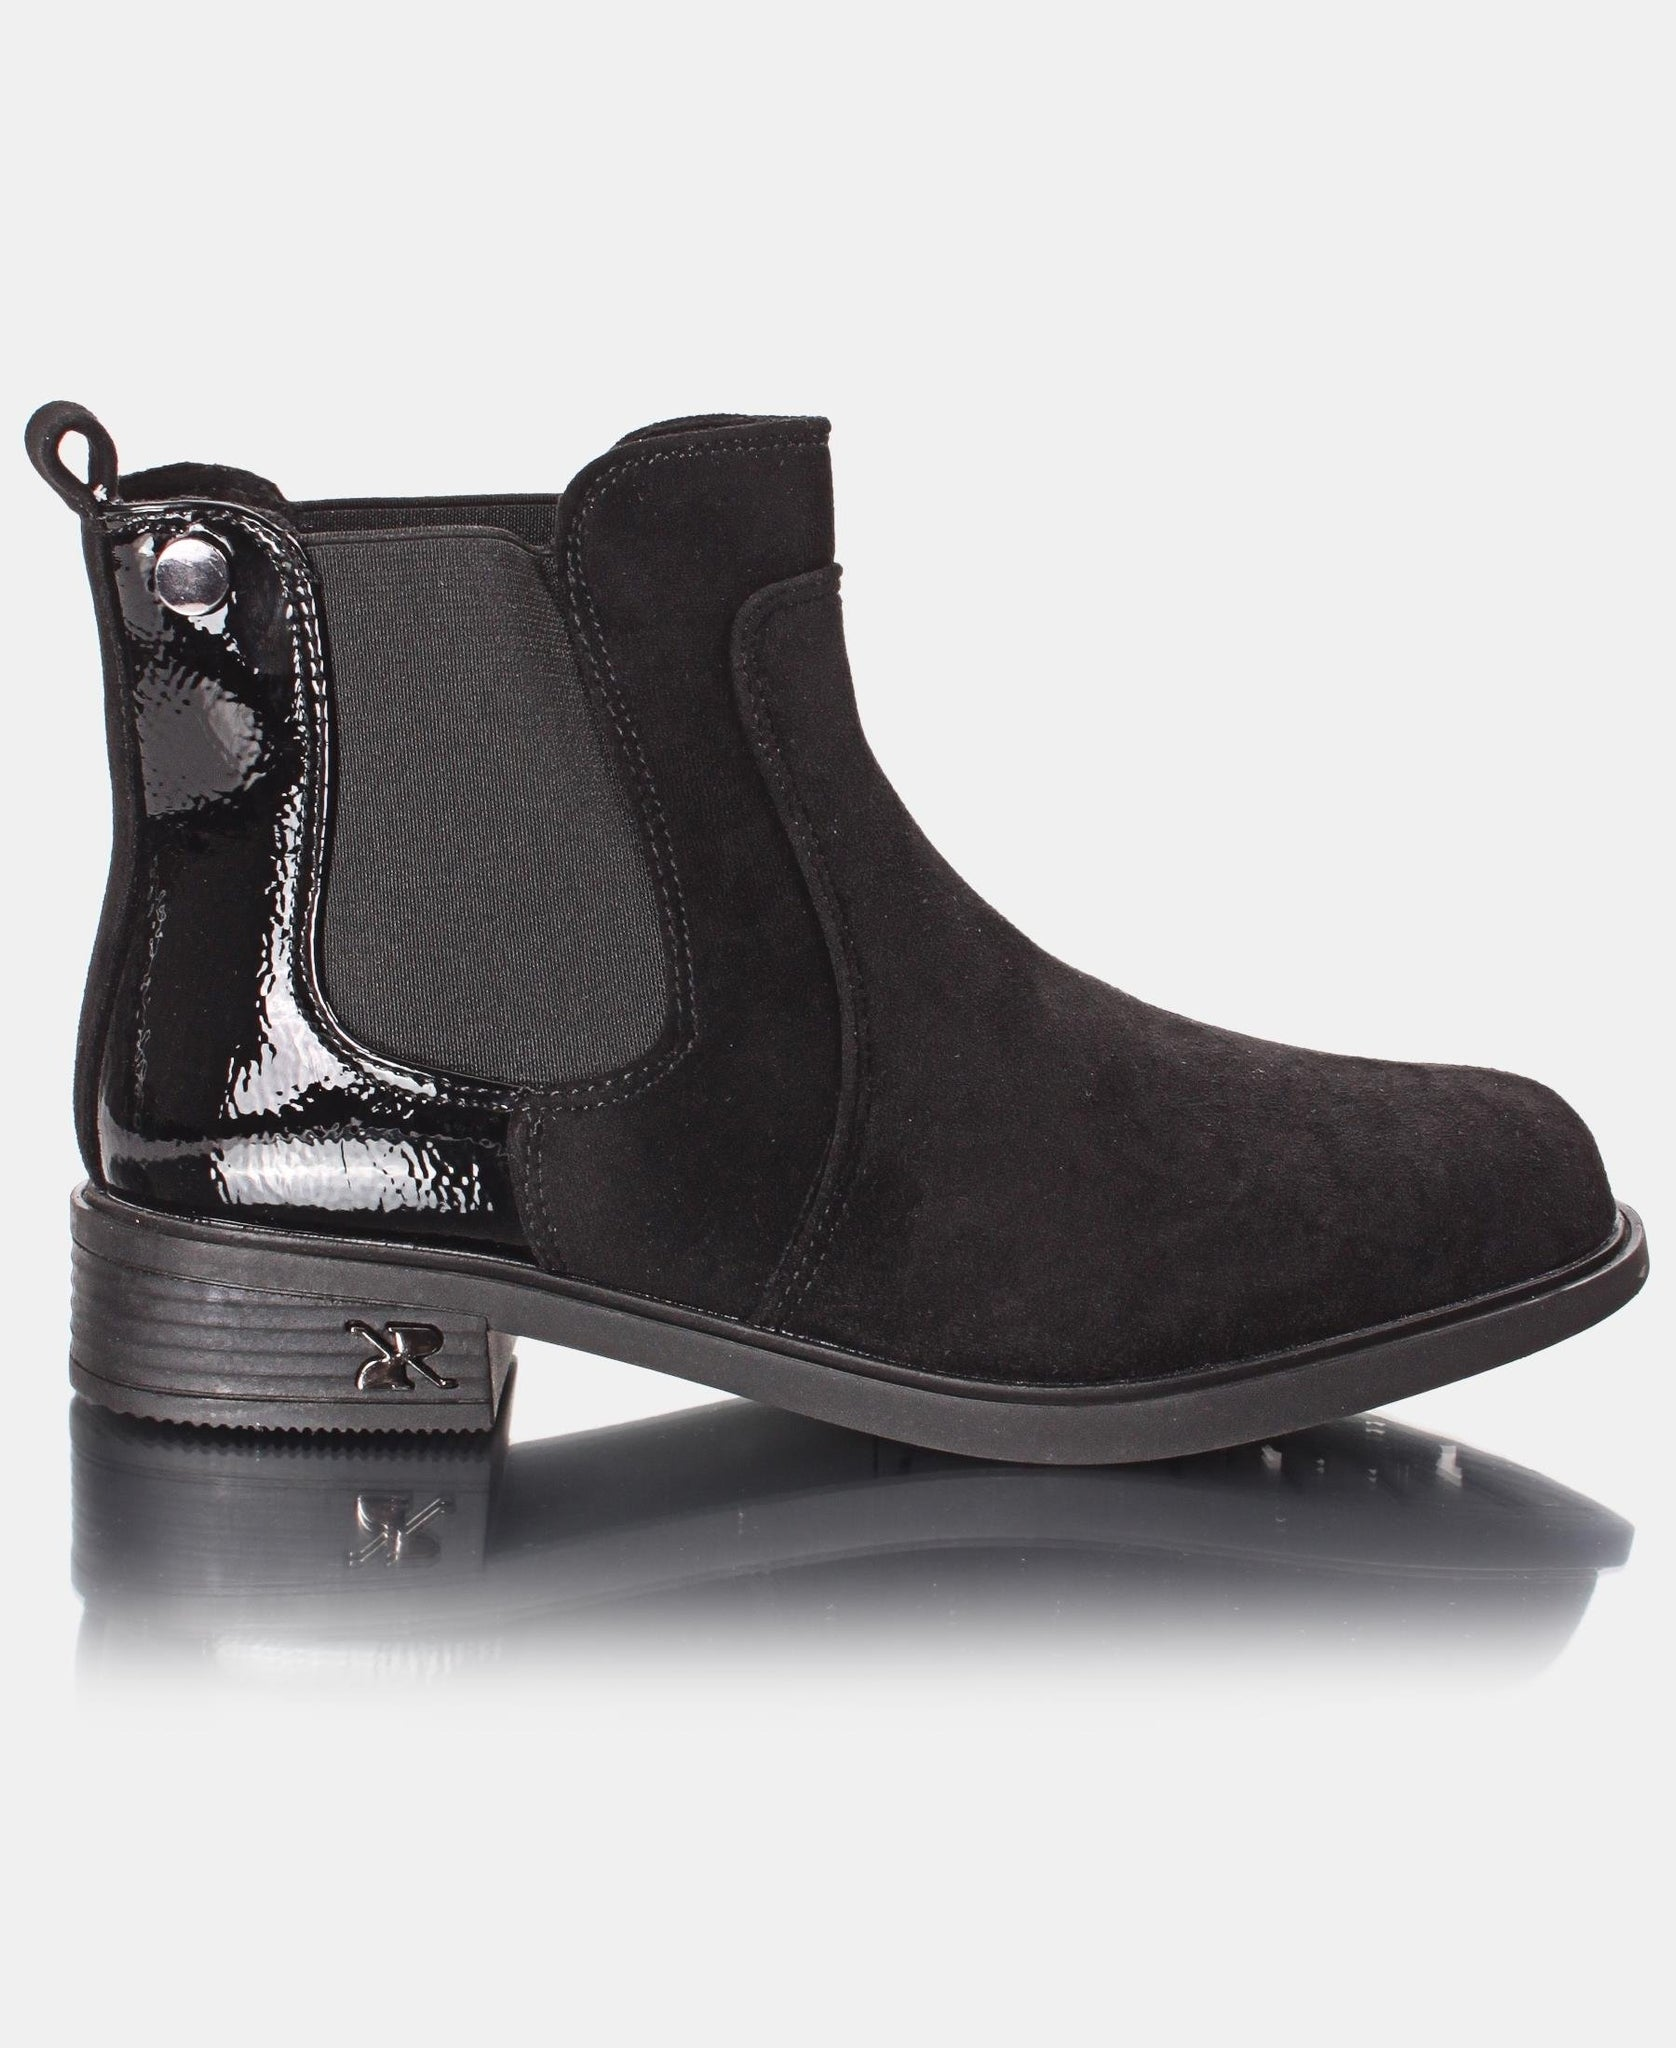 Comfy Suede Ankle Boots - Black